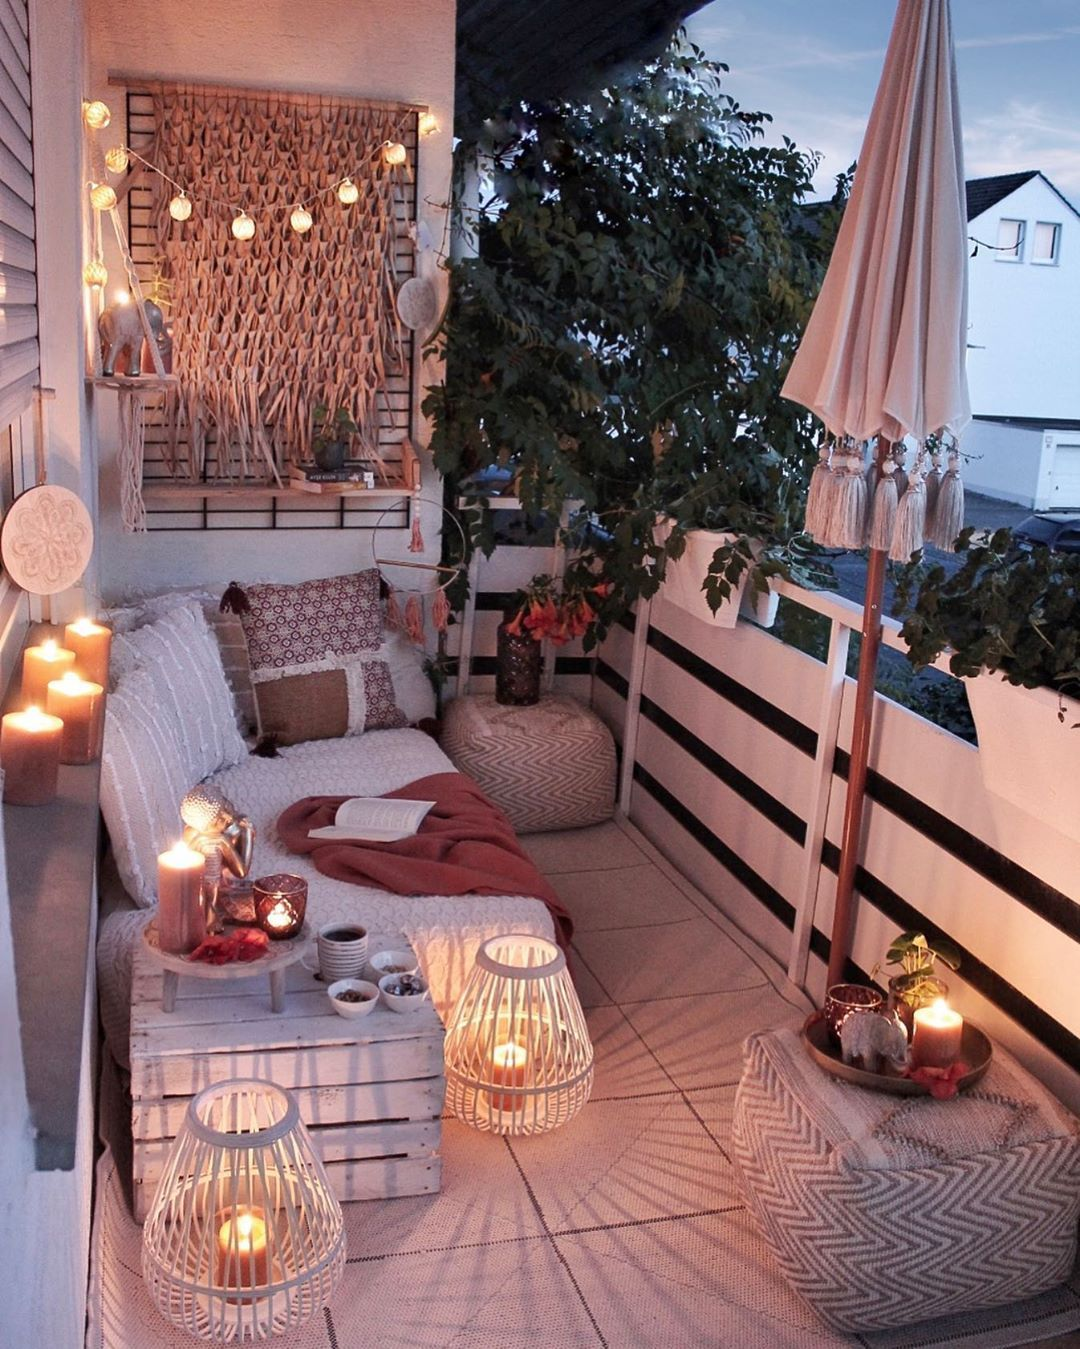 Outdoor Lighting Ideas to Make the Most of Your Space